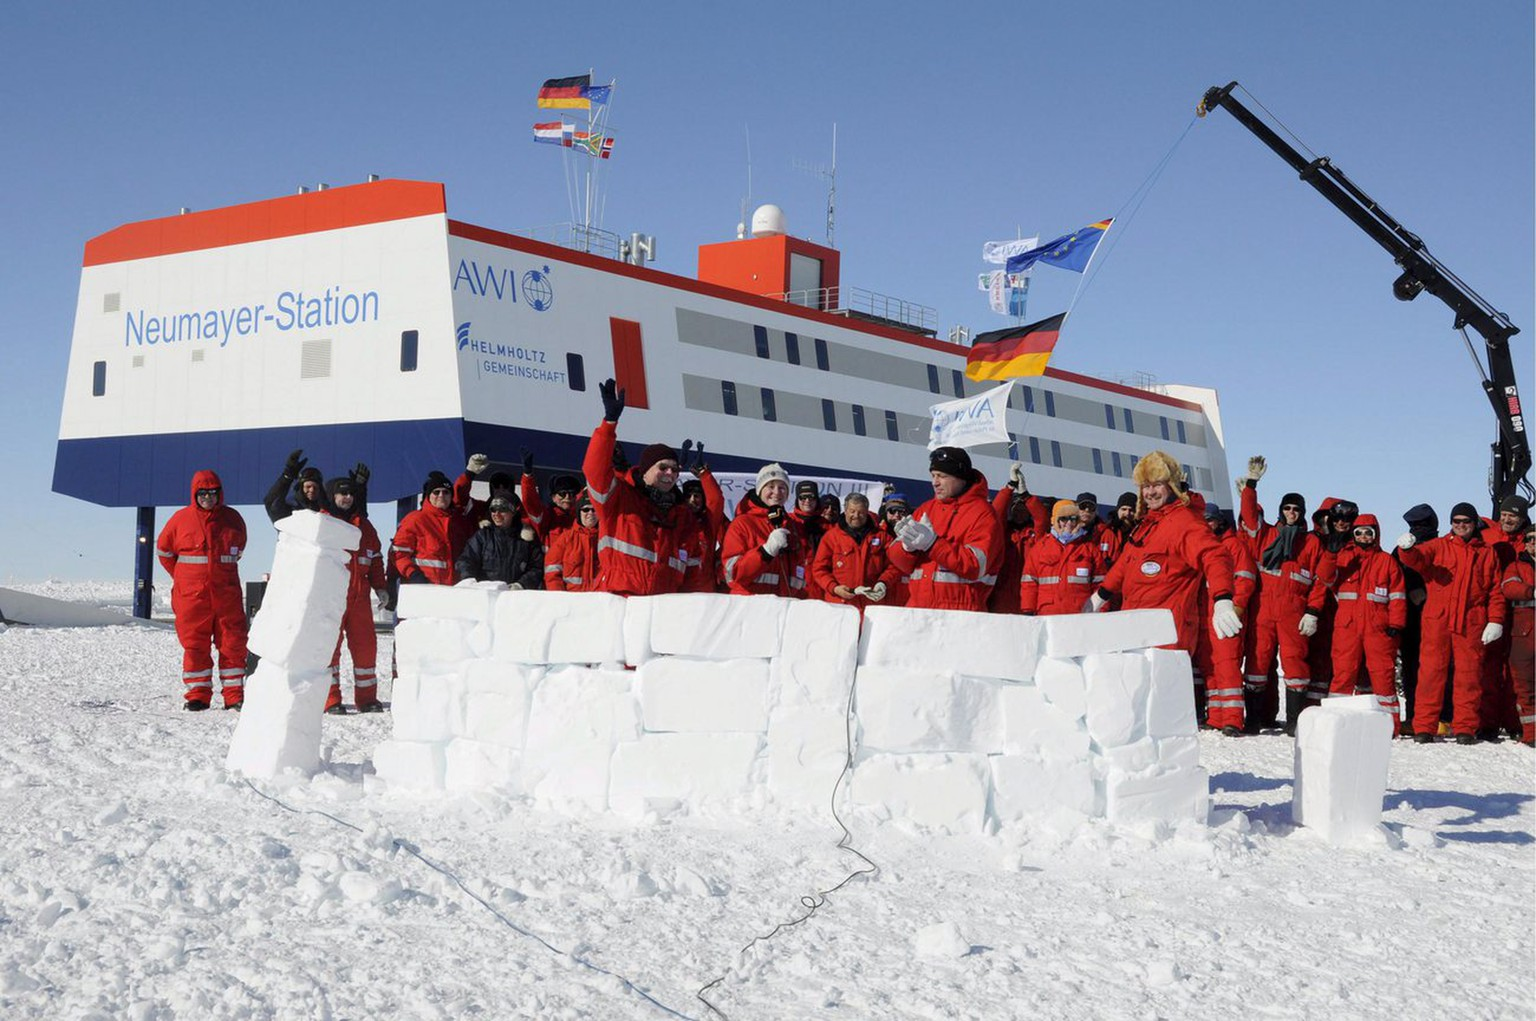 epa01641999 Researchers, technicians and craftsmen cheer the inauguration of the new German Antarctic research facility Neumayer Station III in the Antarctica. 20 February 2009. The research facility of the Alfred Wegener Inistitute for Polar and Maritime Research can be lifted by hydraulic pillars in order to counterbalance the fresh snow and guarantee a running time of 30 years.  EPA/Alfred Wegener Inistitute/Hans-Christian Woeste  EDITORIAL USE ONLY